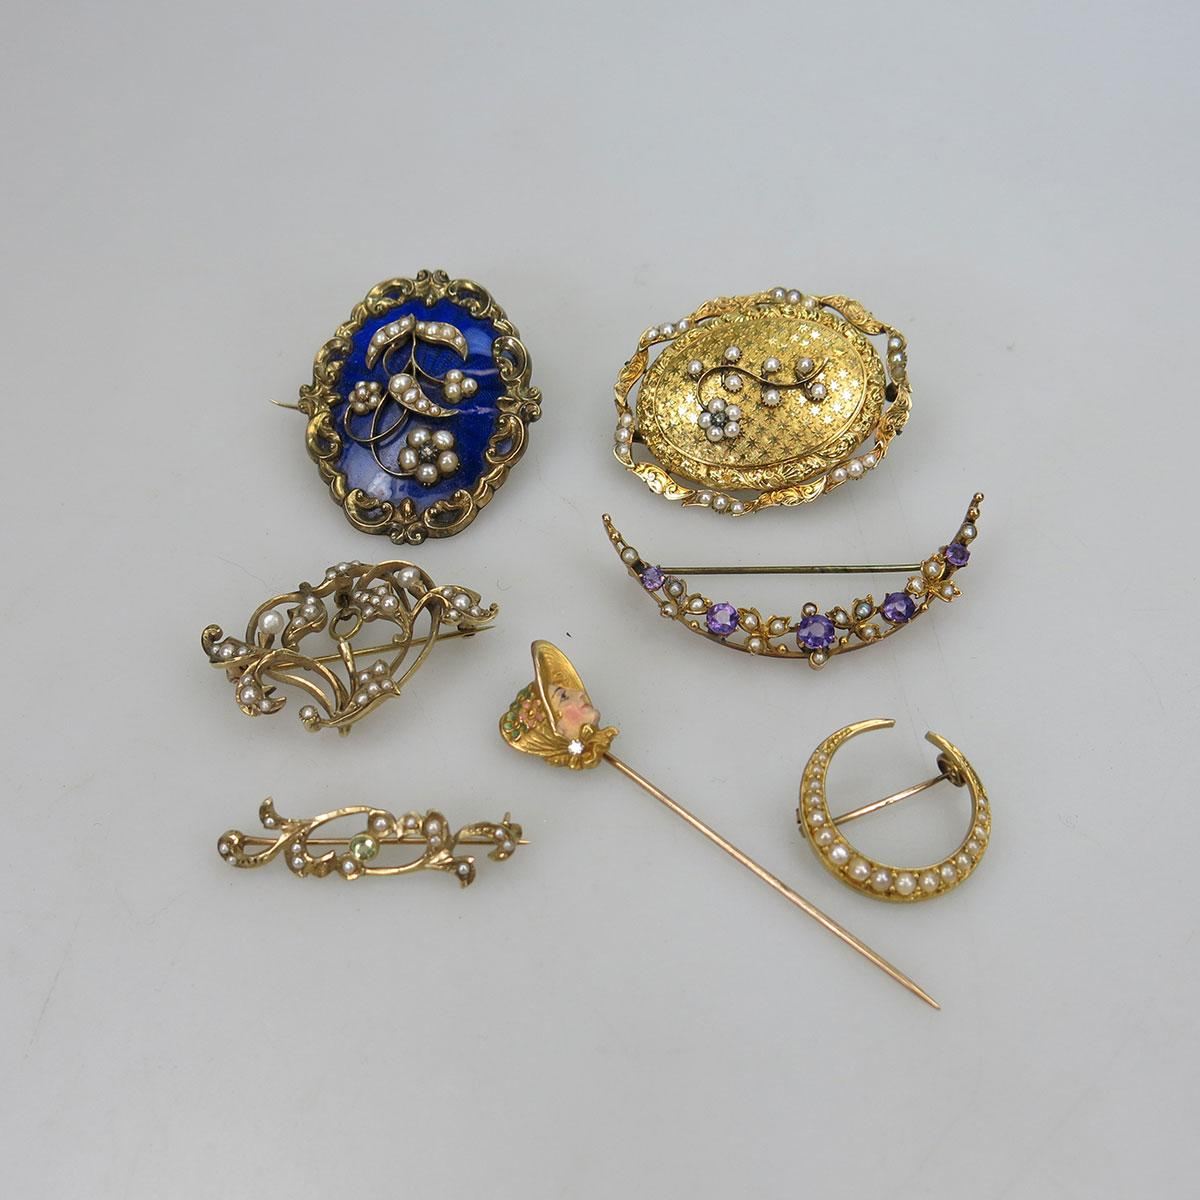 7 Various Gold And Gold-Filled Pins